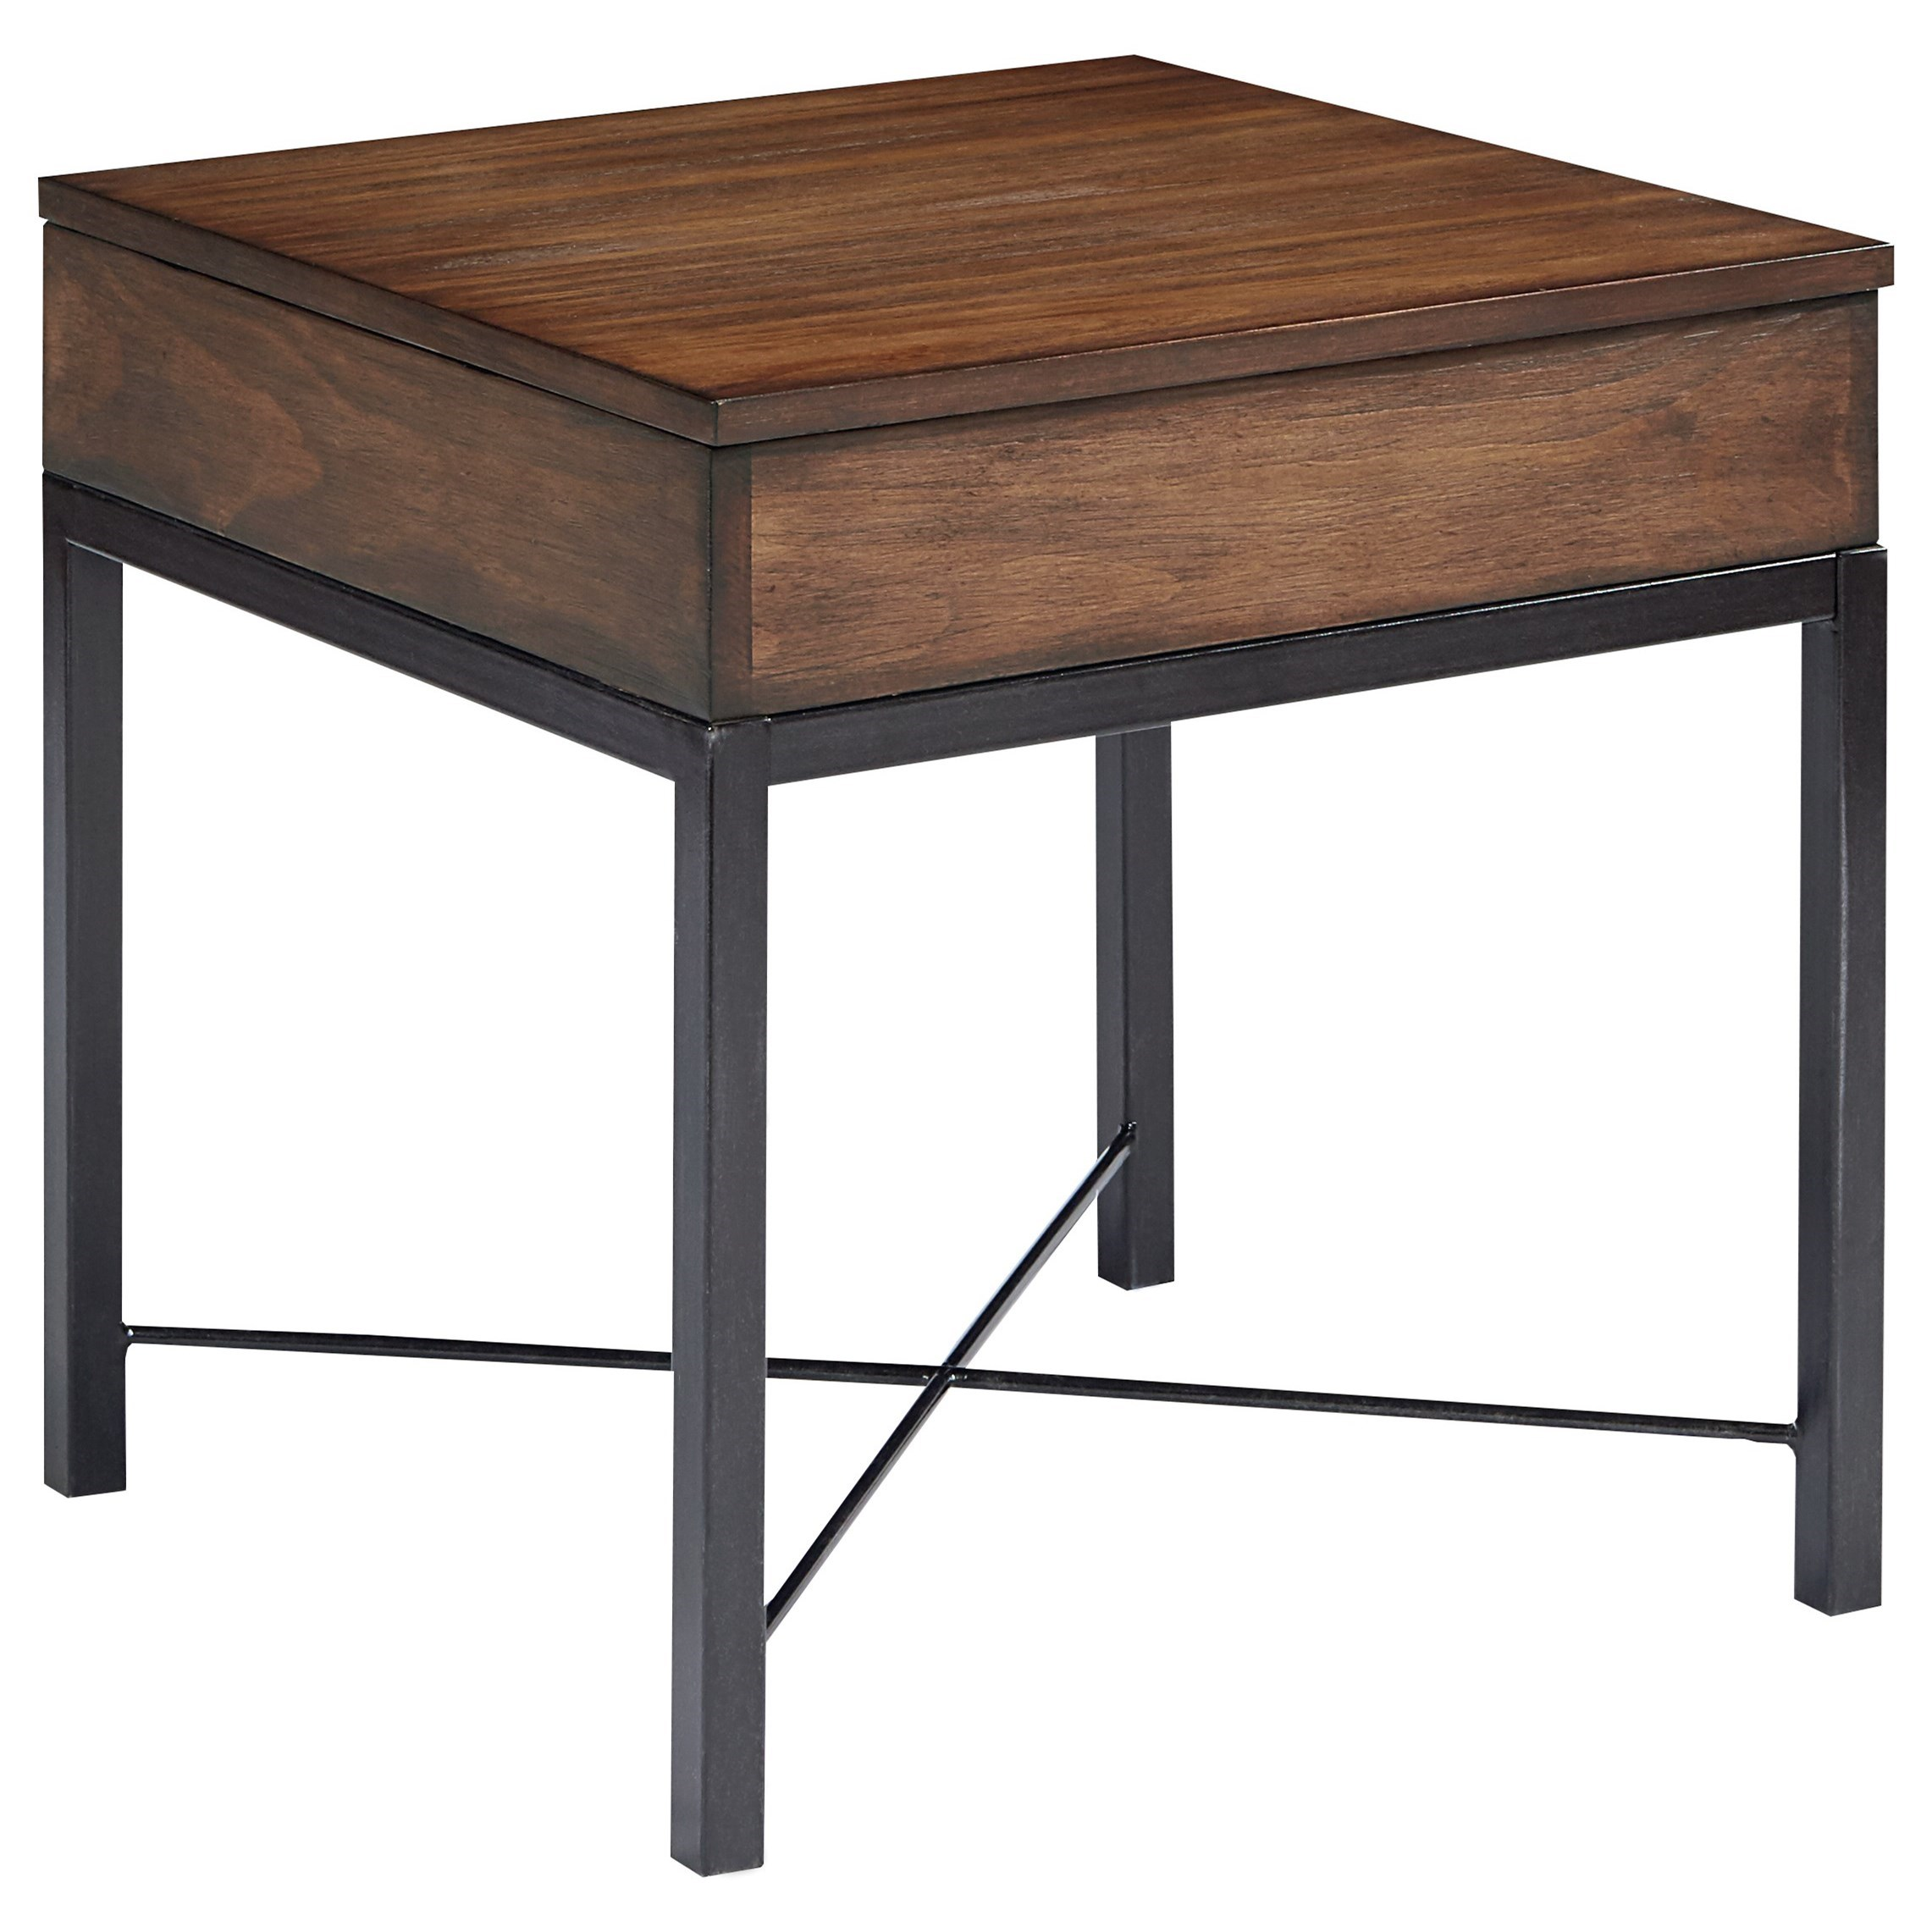 Magnolia Home by Joanna Gaines Accent Elements End Table - Item Number: 8020202L